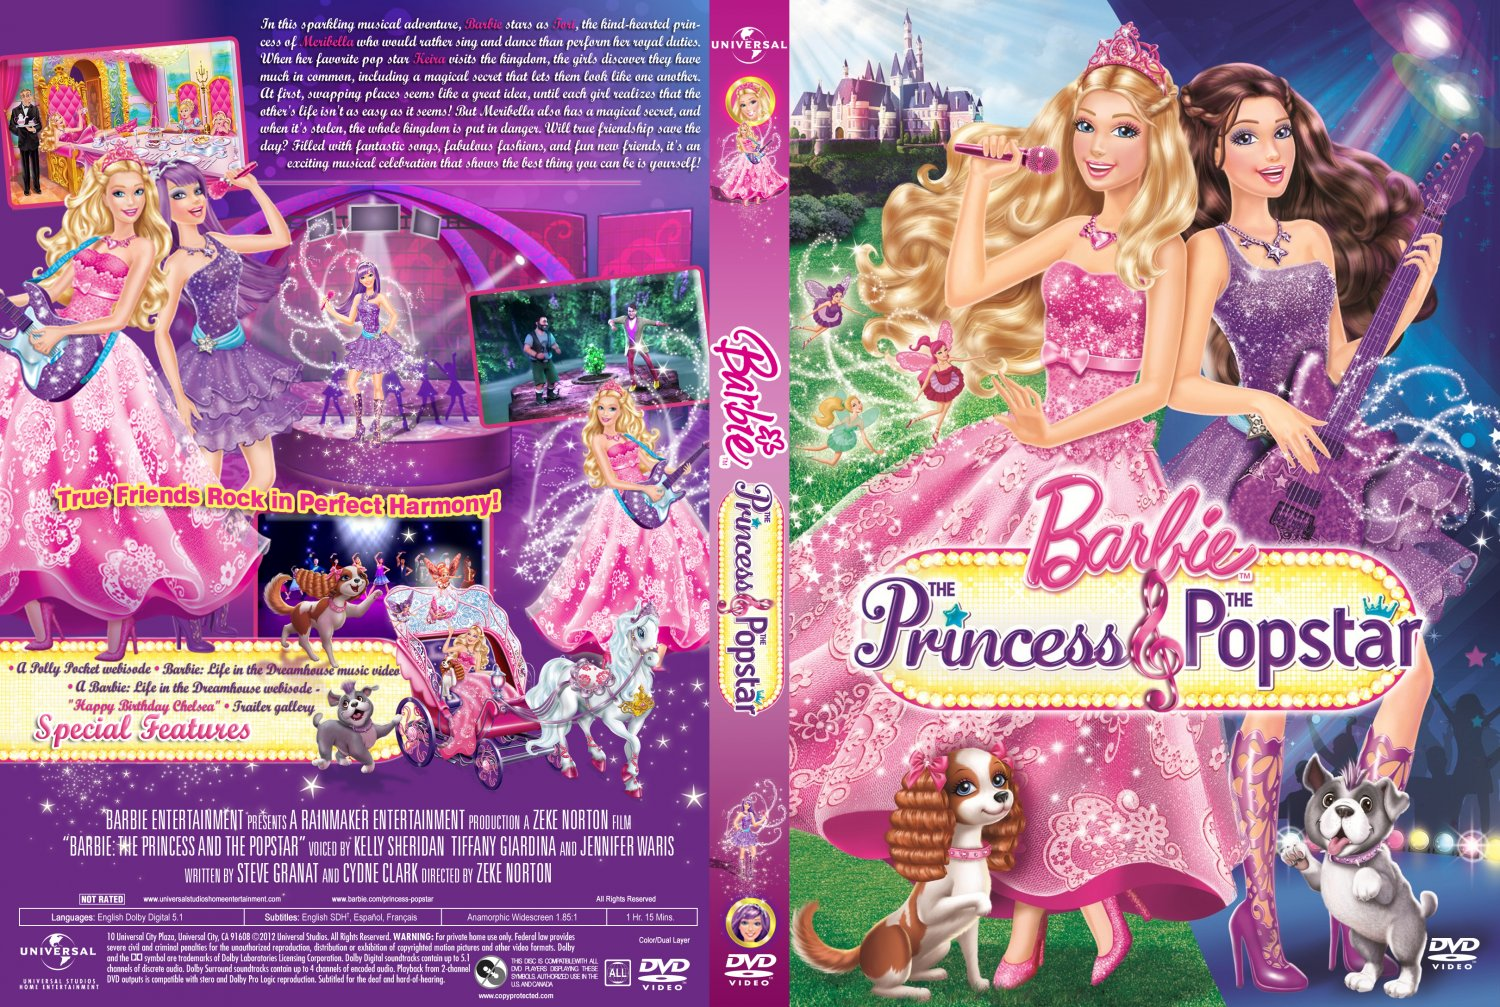 Barbie sinema DVD covers